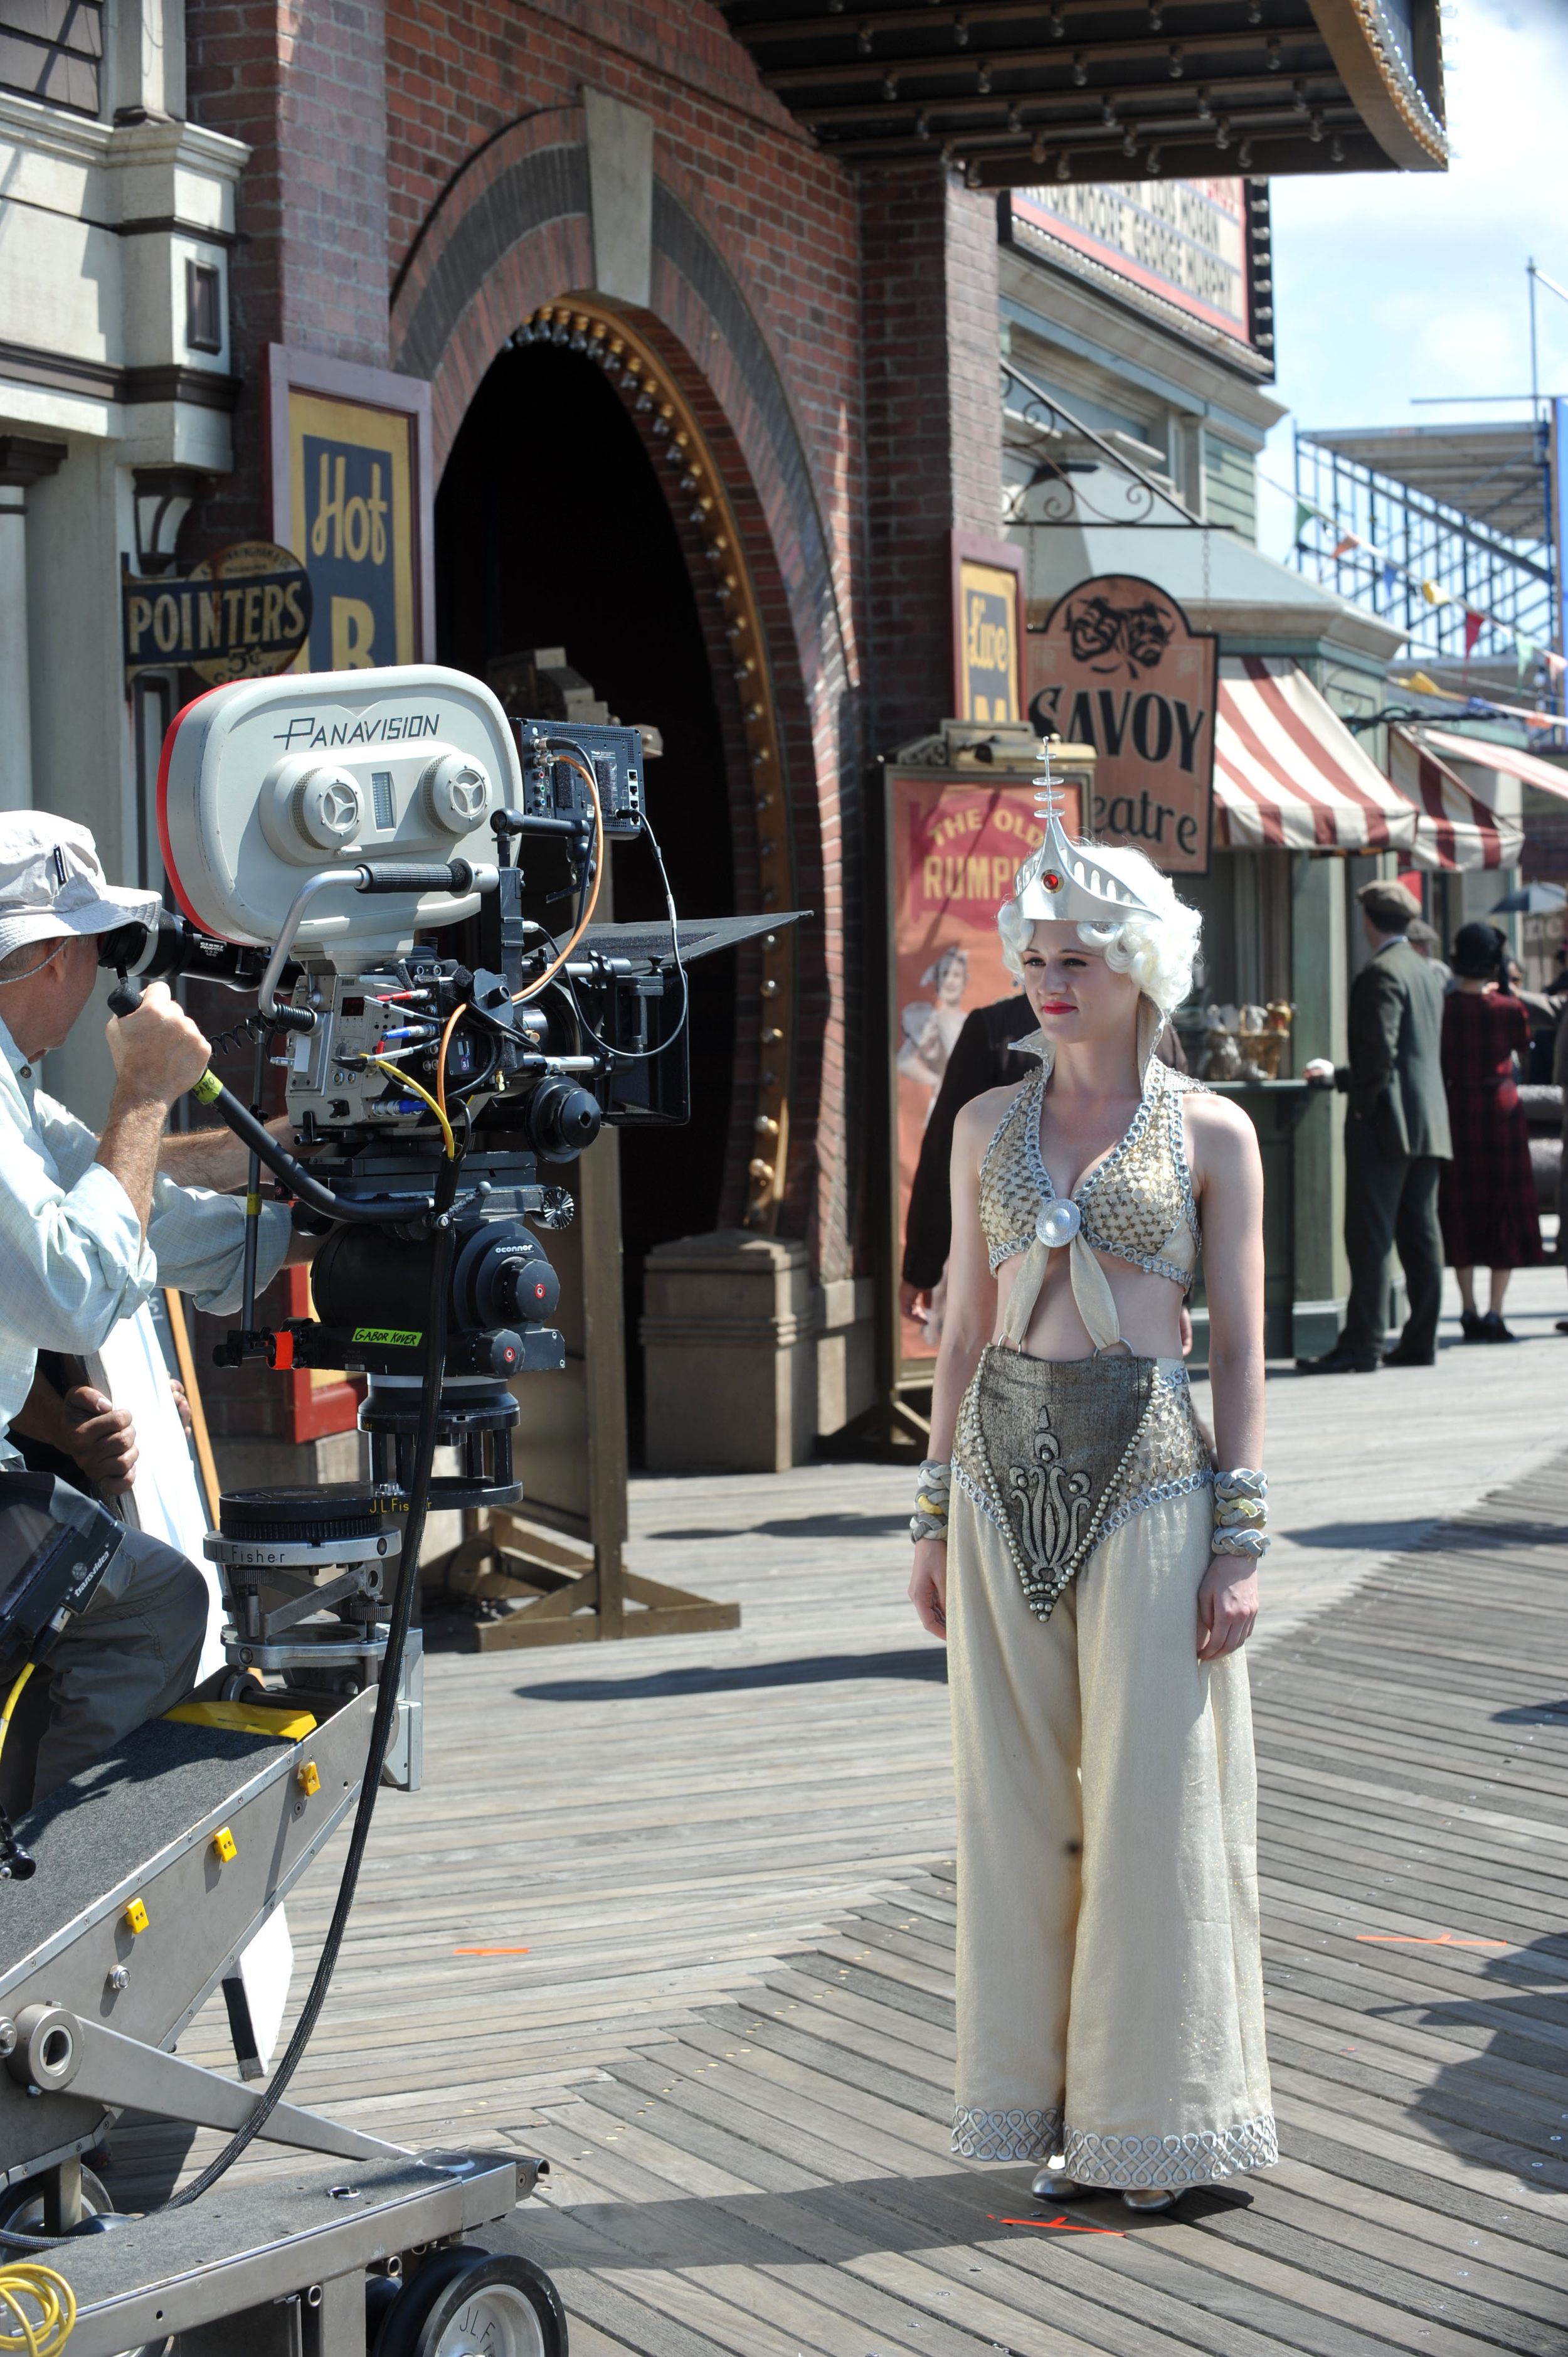 On set for the final episode of HBO's Boardwalk Empire . Photo taken by Steve Sands, courtesy of Getty Images.